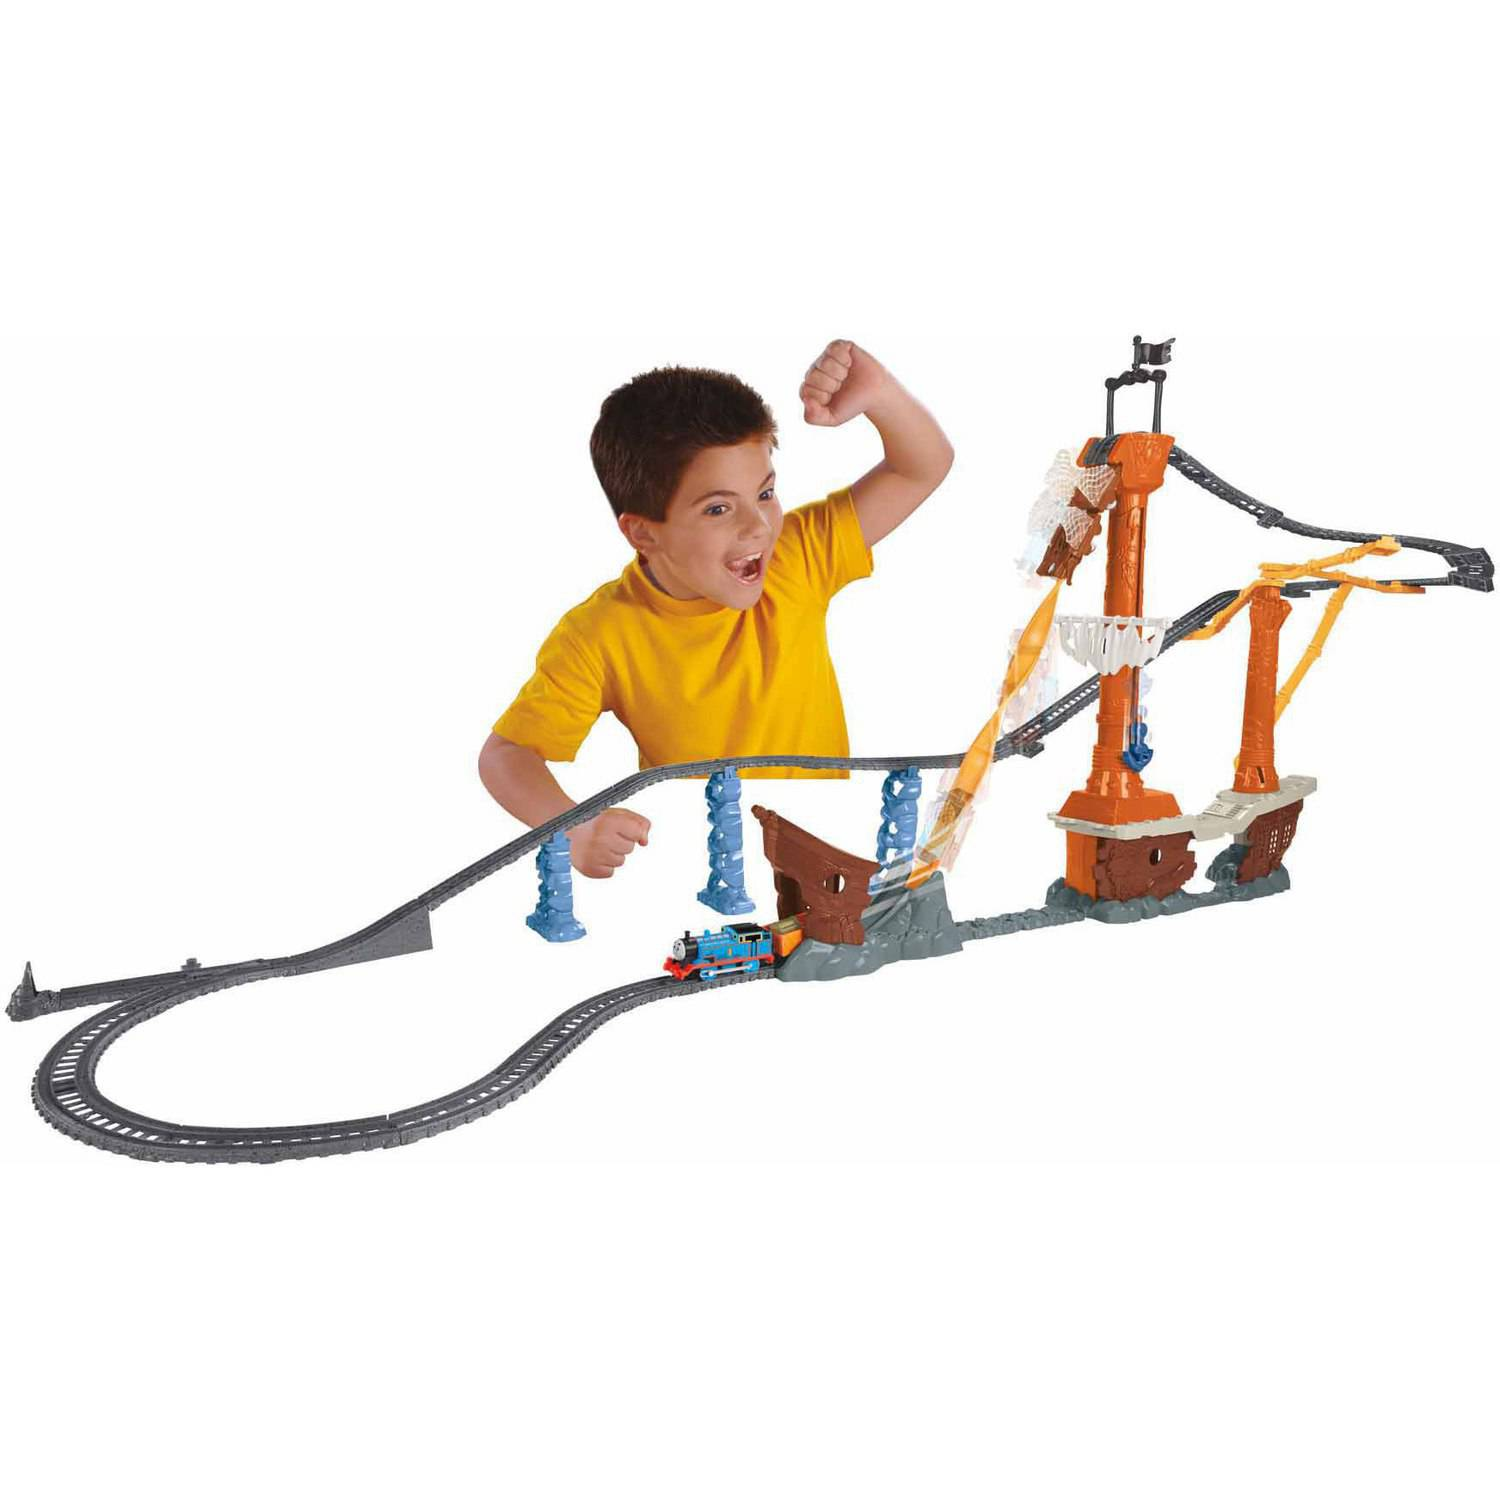 Fisher-Price Thomas & Friends TrackMaster Shipwreck Rails Set